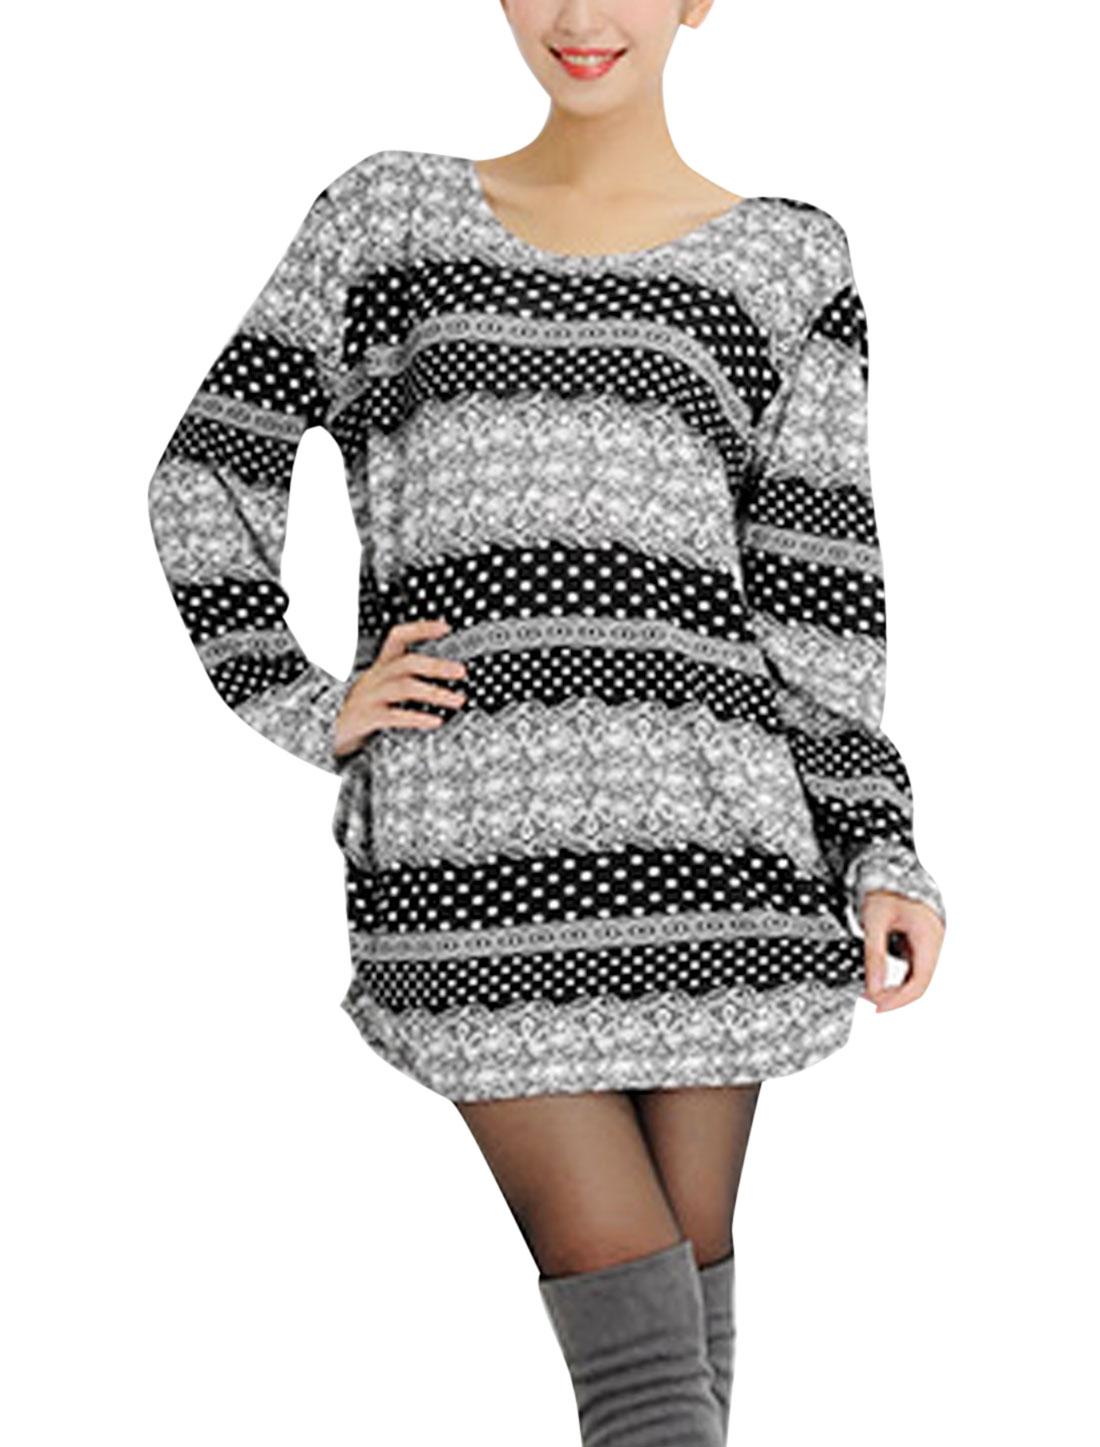 Ladies Black White Long Sleeves Round Neck Casual Top S